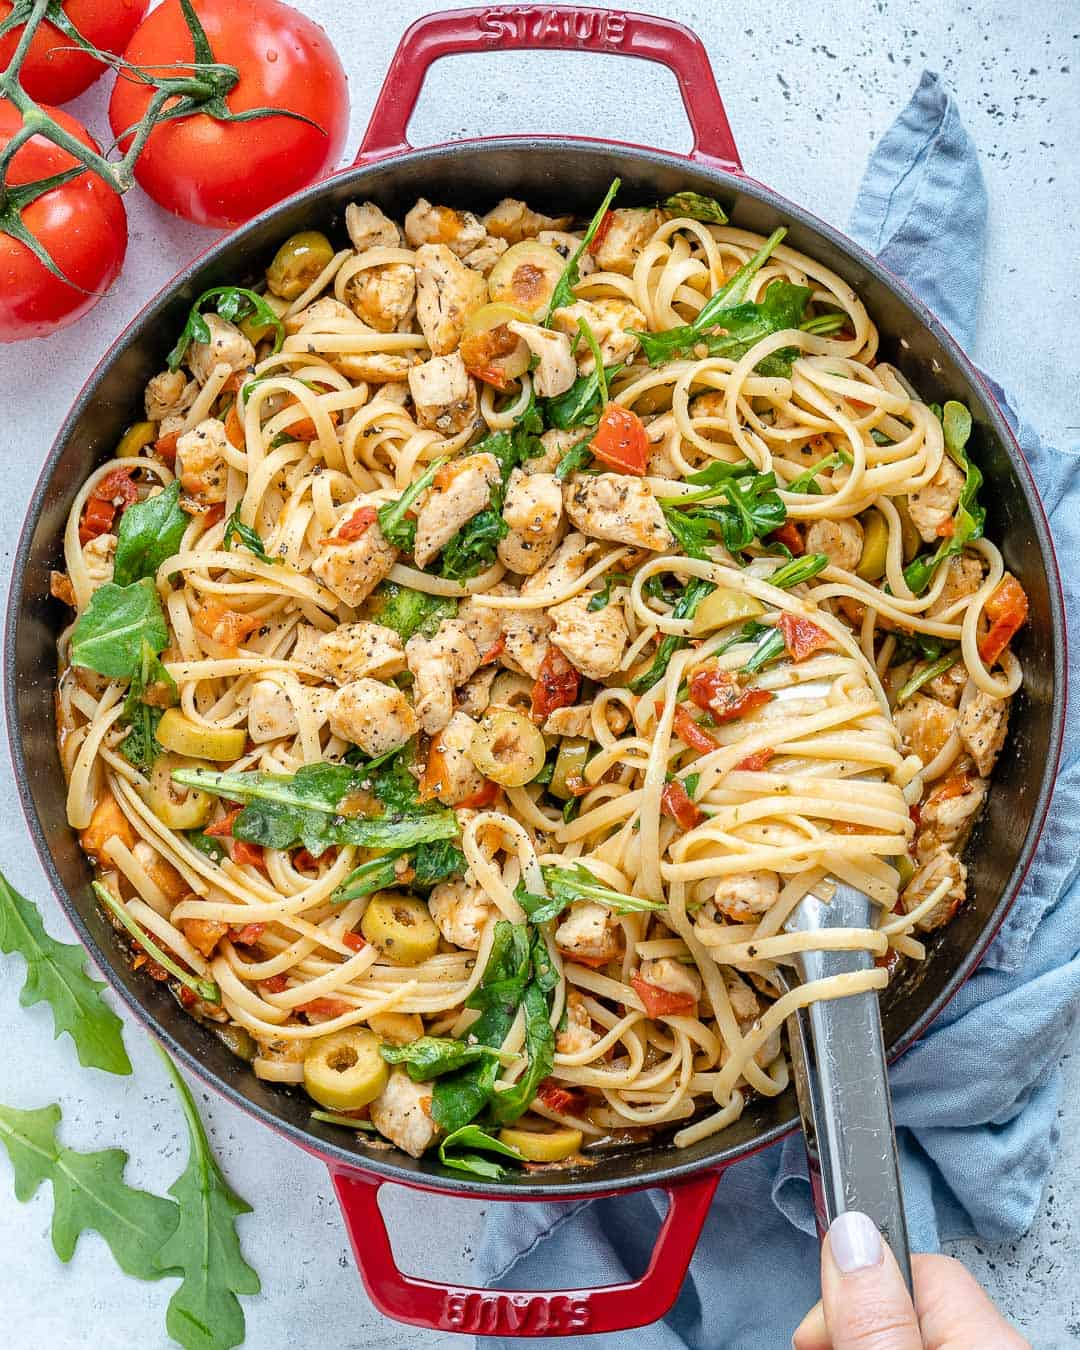 chicken spaghetti in a red skillet which utensil grabbing some pasta.